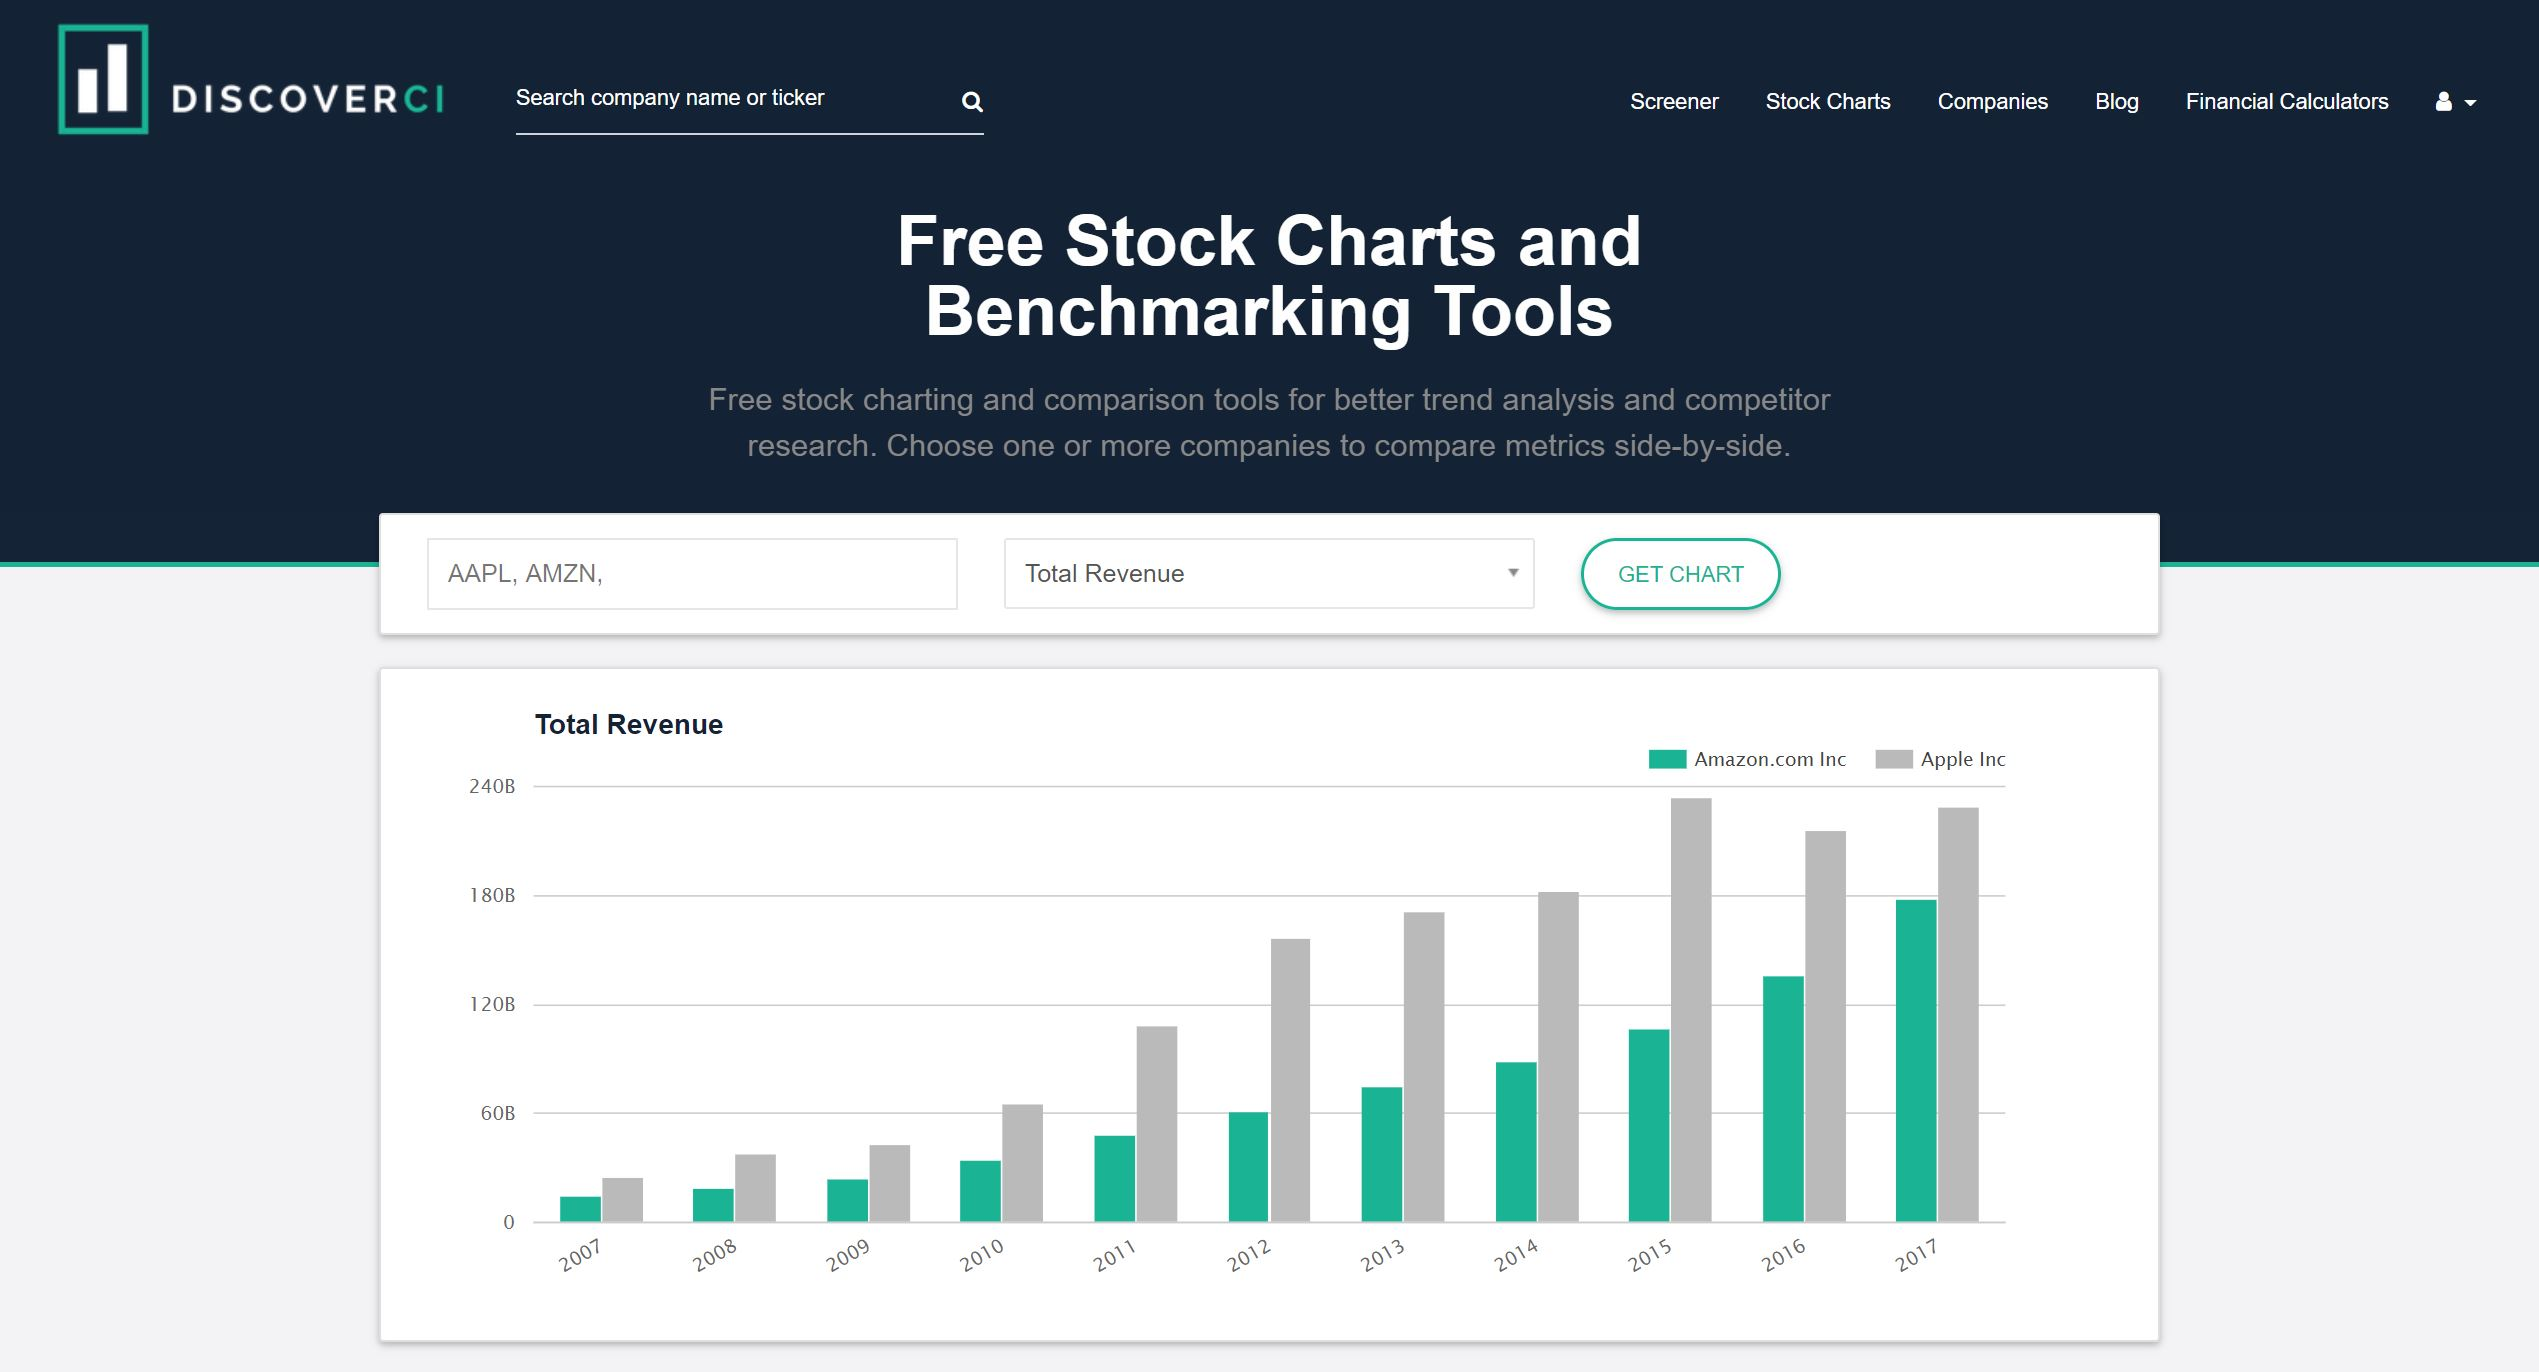 Free Stock Charts and Benchmarking Tools